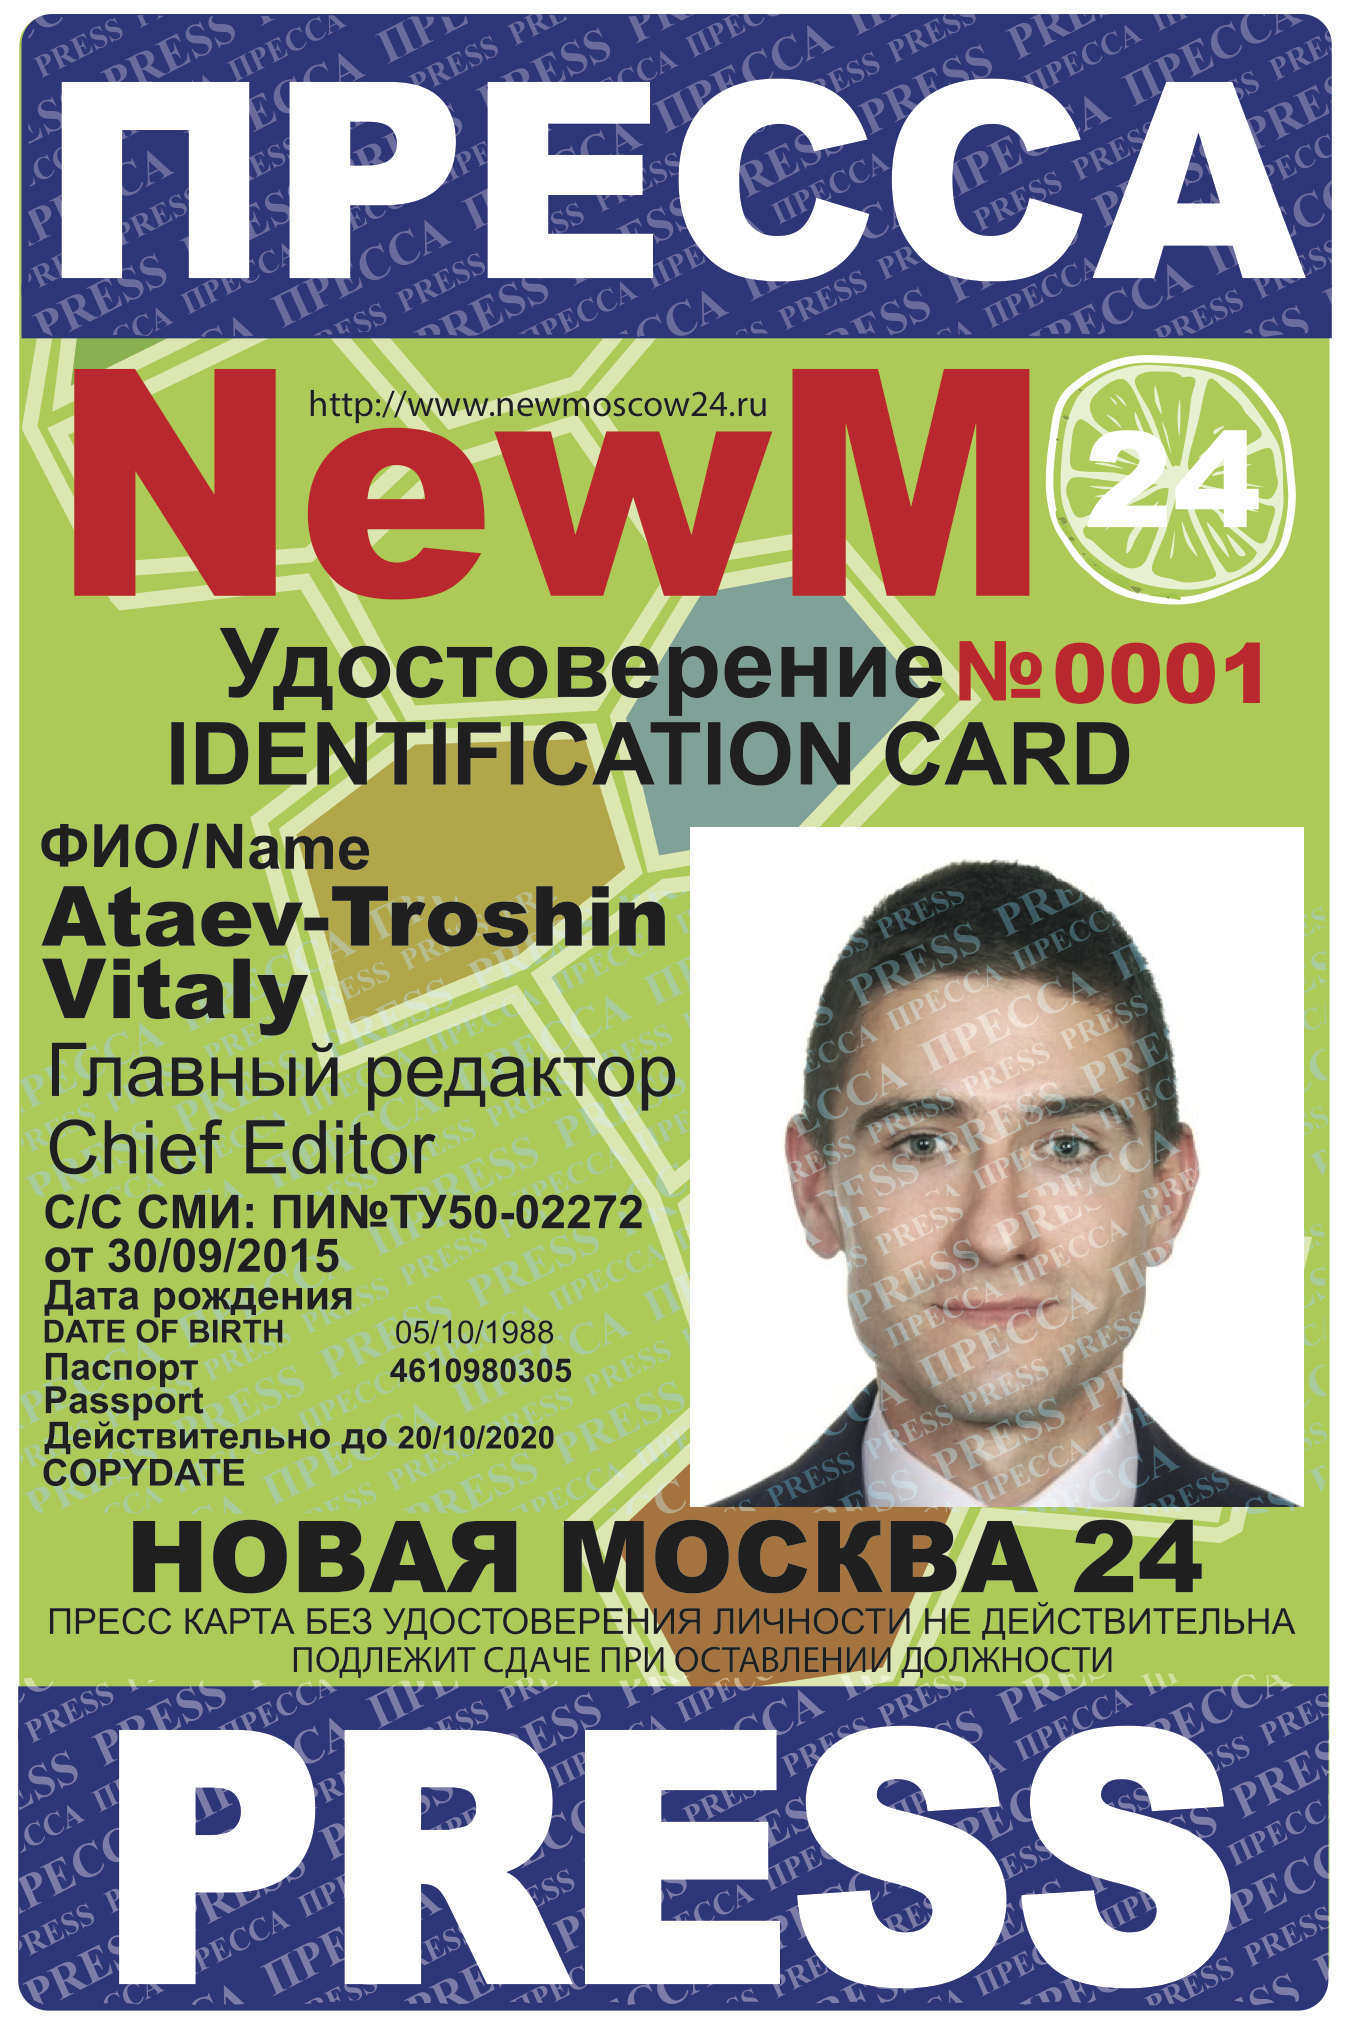 ID_vitaly_newmoscow24